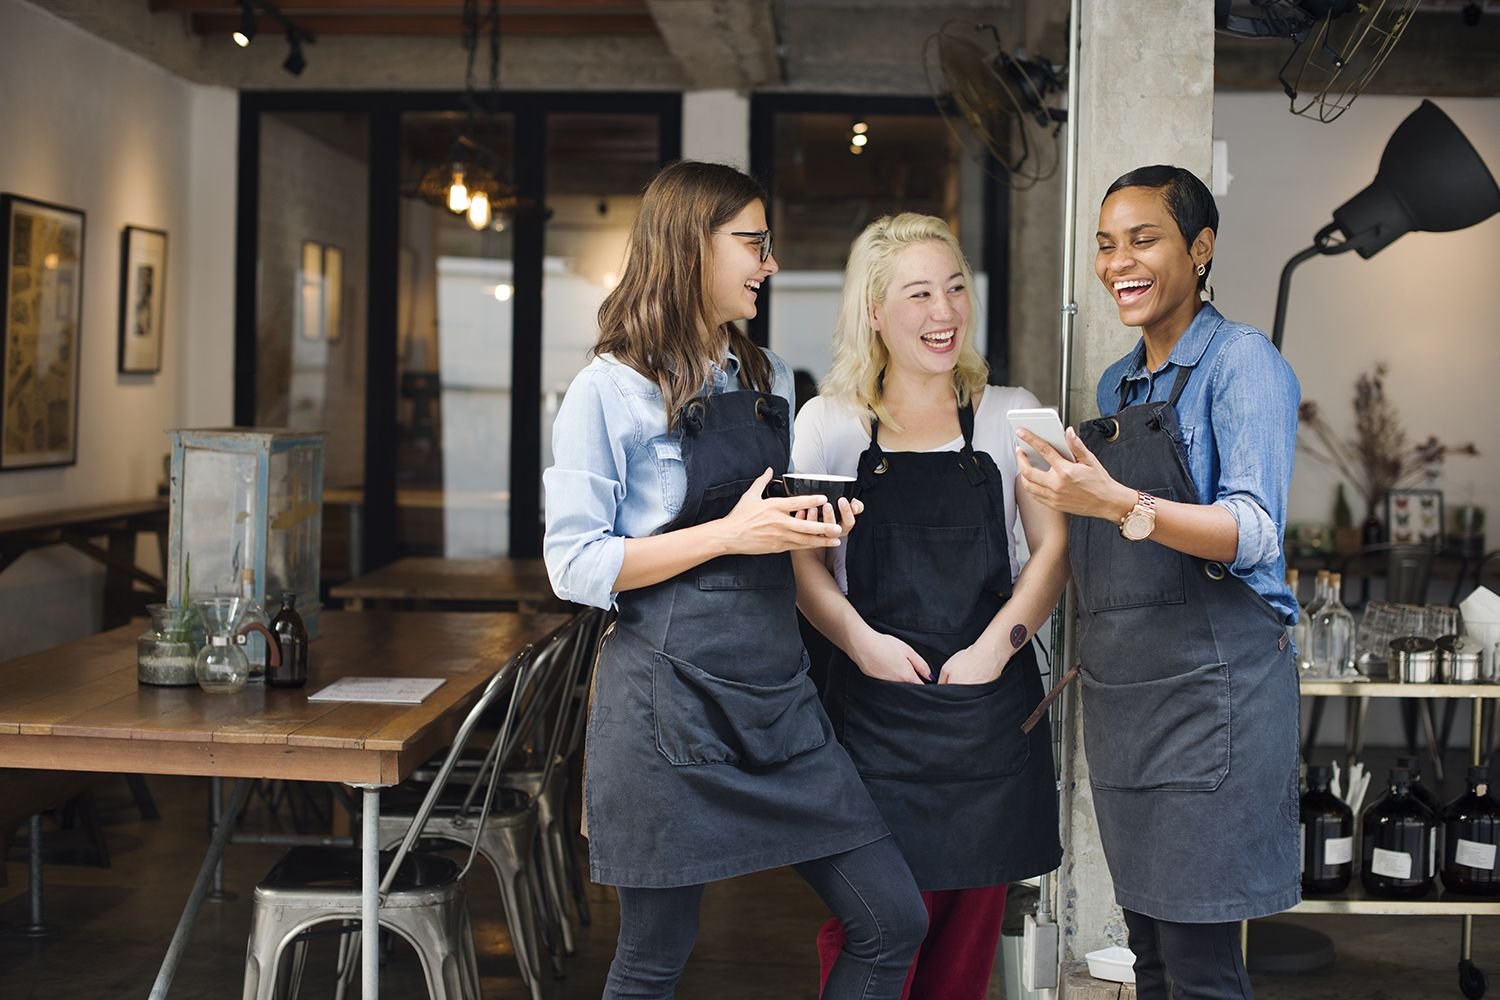 Restaurant Labor Cost: What It Is And 8 Ways To Control It